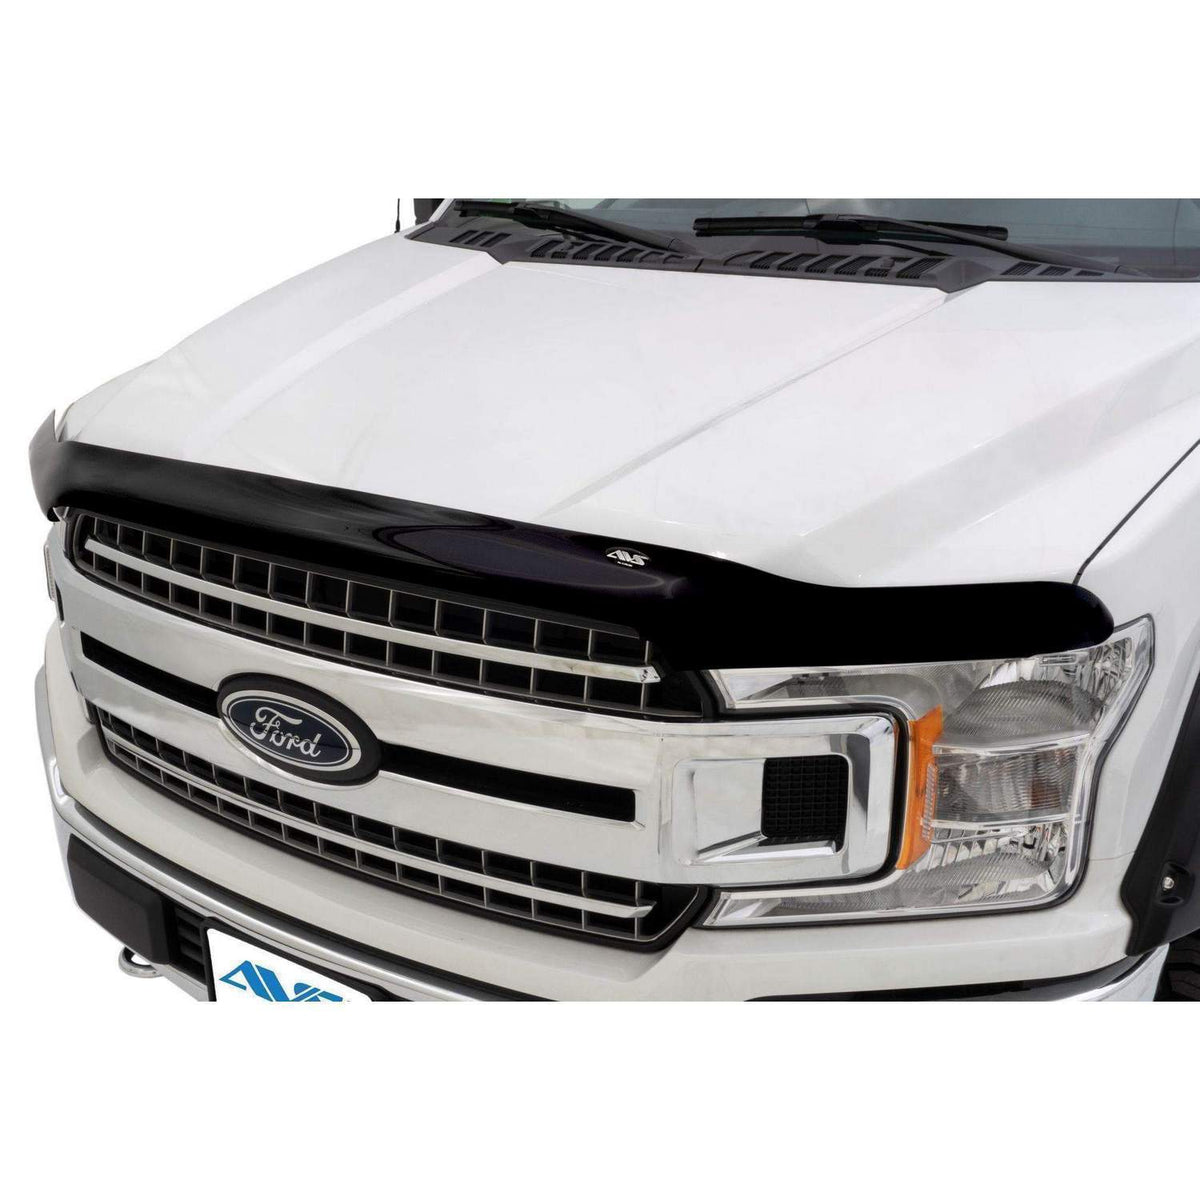 AVS Bugflector II Dark Smoke Hood Shield | 2017-2020 Ford F-150 Raptor (25637)